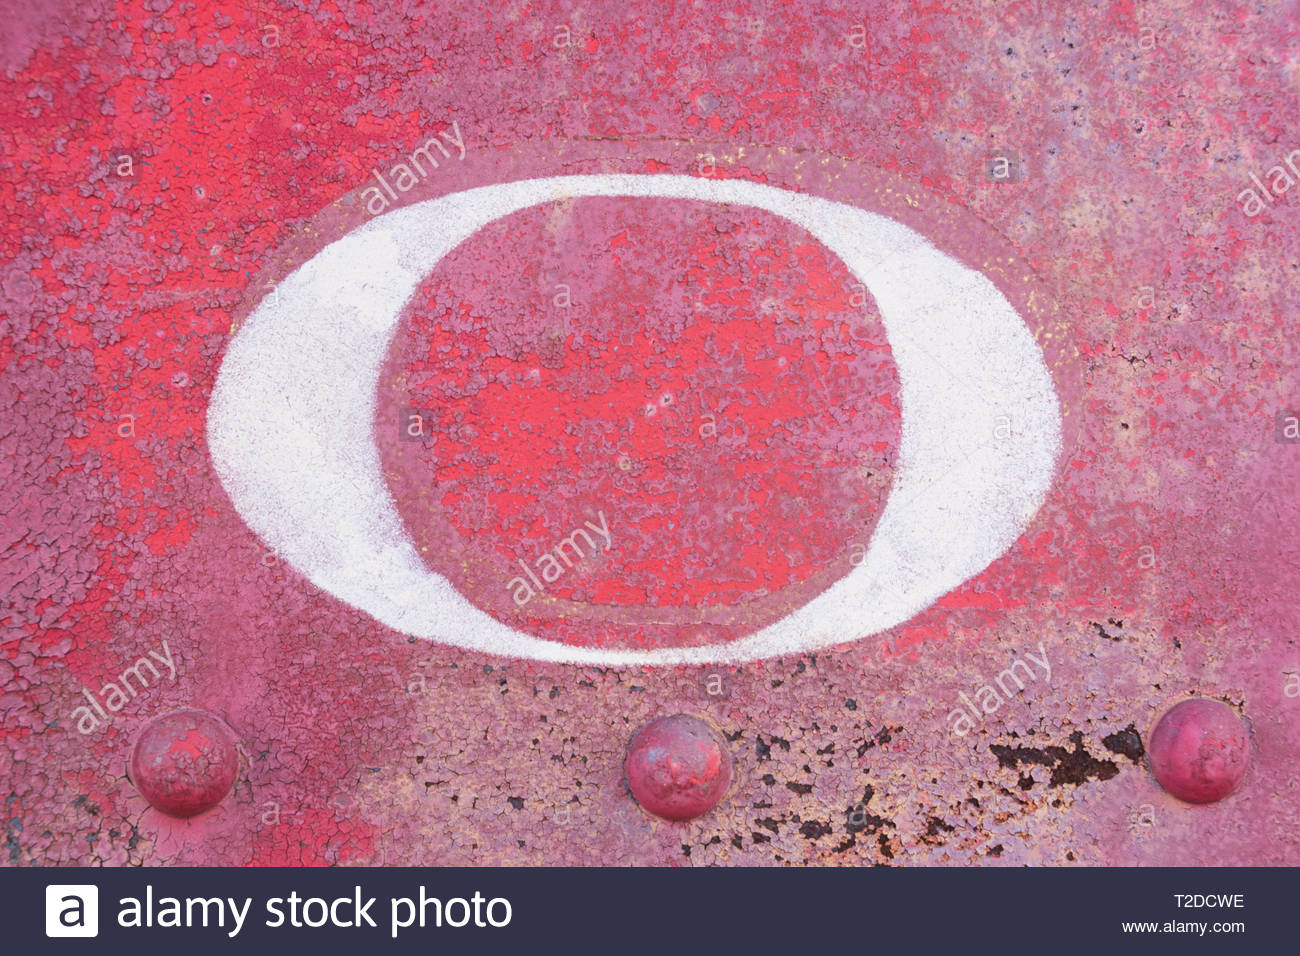 Found letter O on an old train car with distressed, grungy painted rust background. - Stock Image